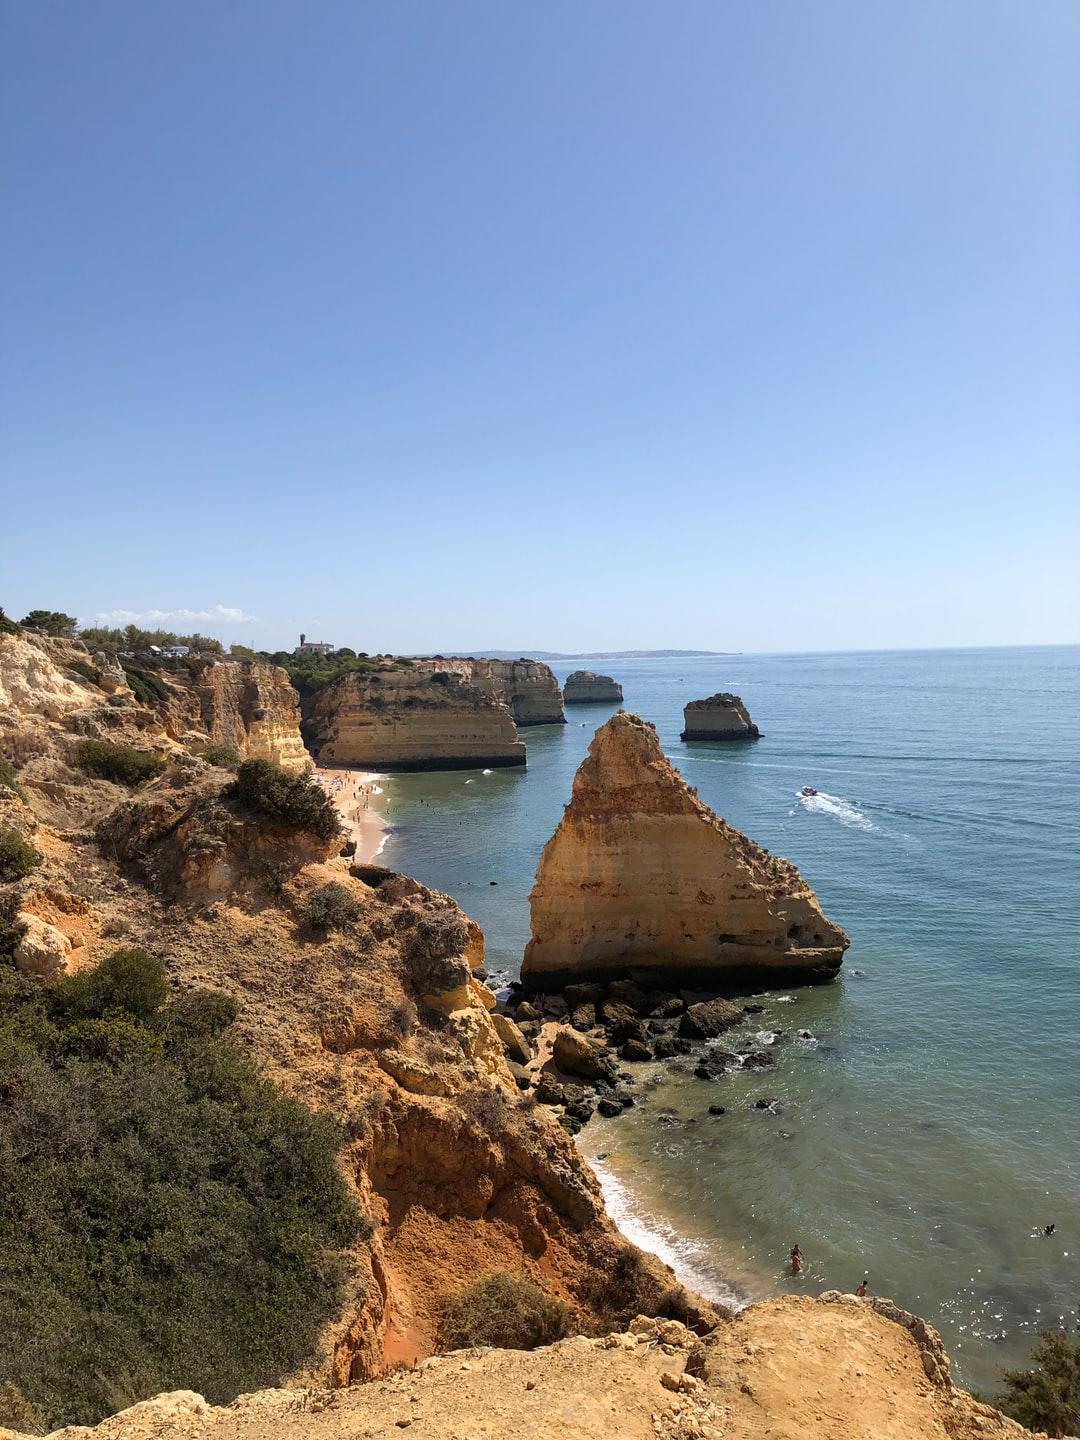 Benagil: one of the most beautiful beaches in the Algarve